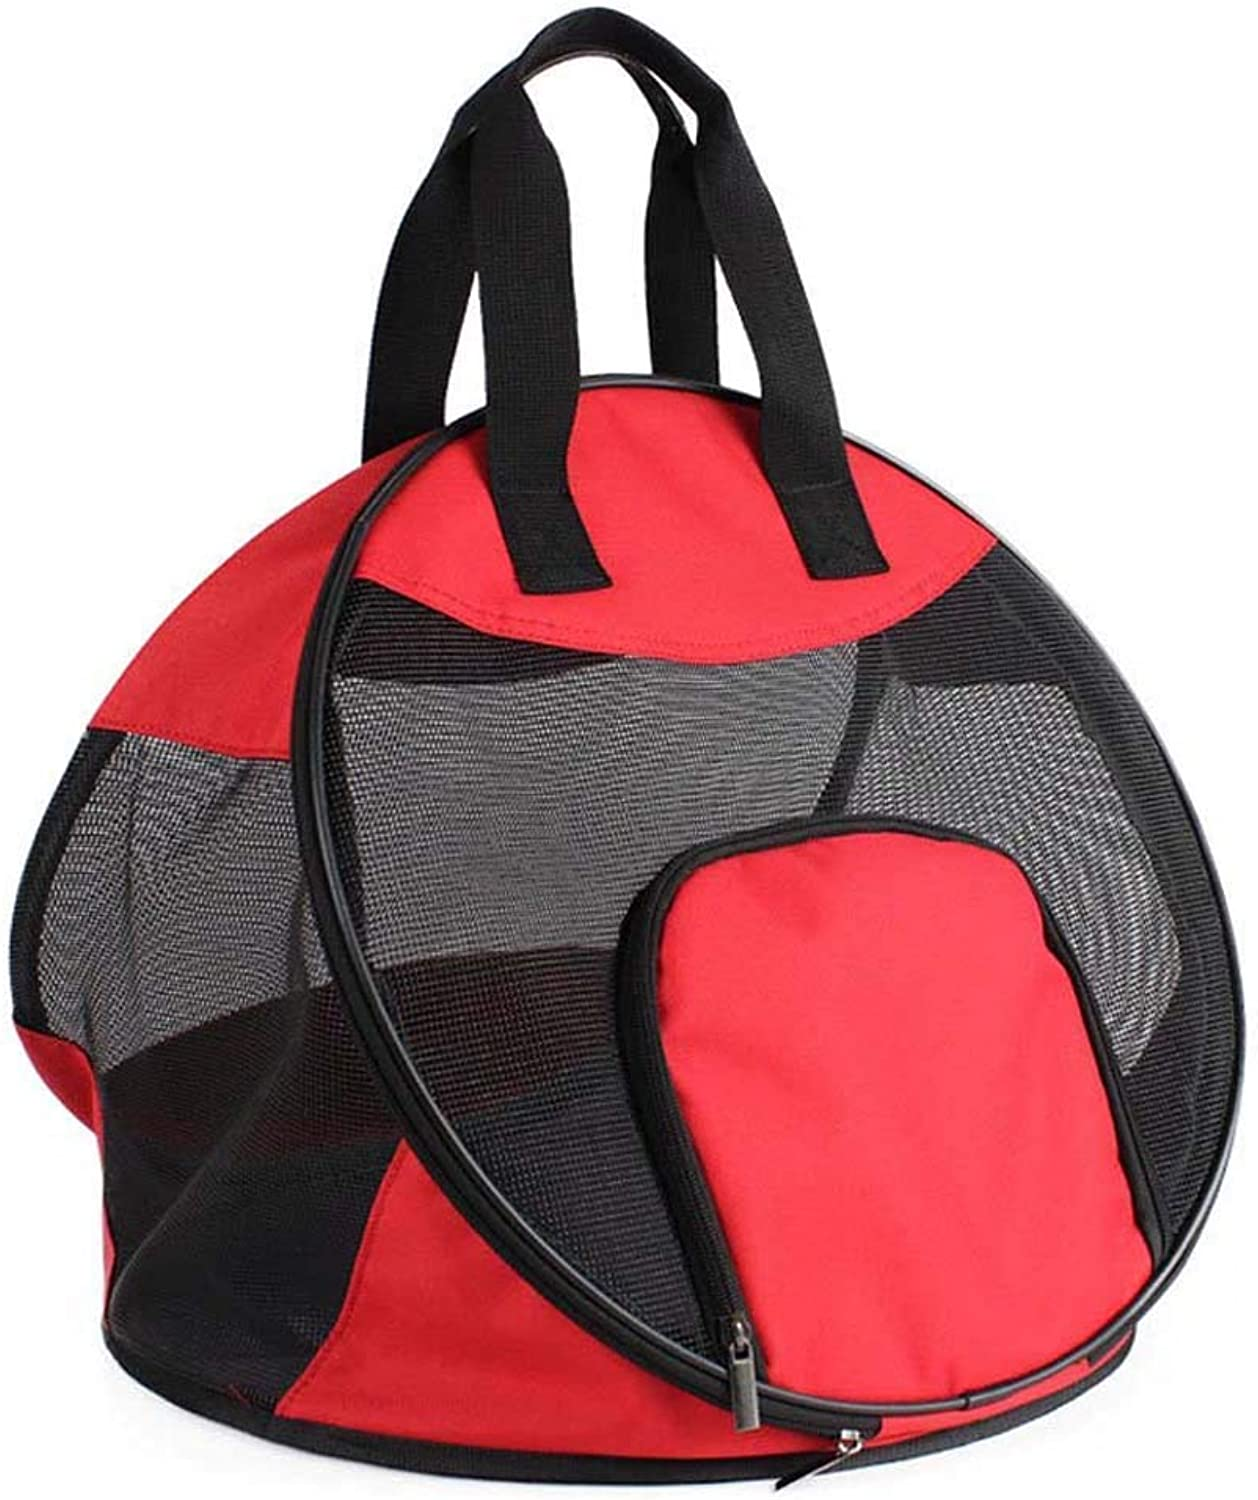 Pet Travel Carrier Foldable pet Bag, Breathable Out Tote Backpacks, DoubleSided Pouch Shoulder Carry Bag Pet Travel Carrier Ourtdoor Pet Bag (color   Red)